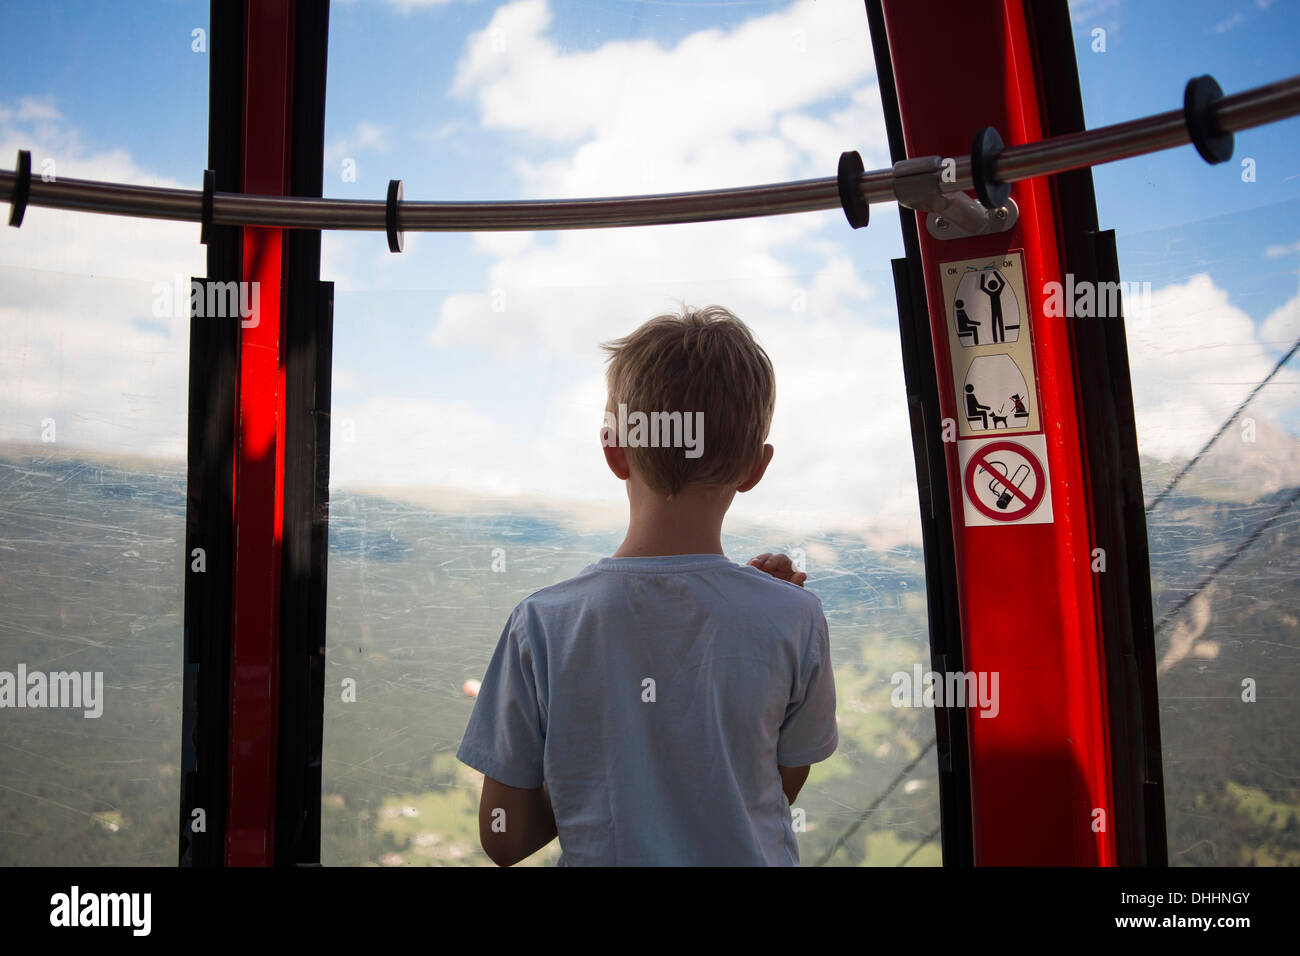 Boy looking out from cable car, Tyrol, Austria - Stock Image